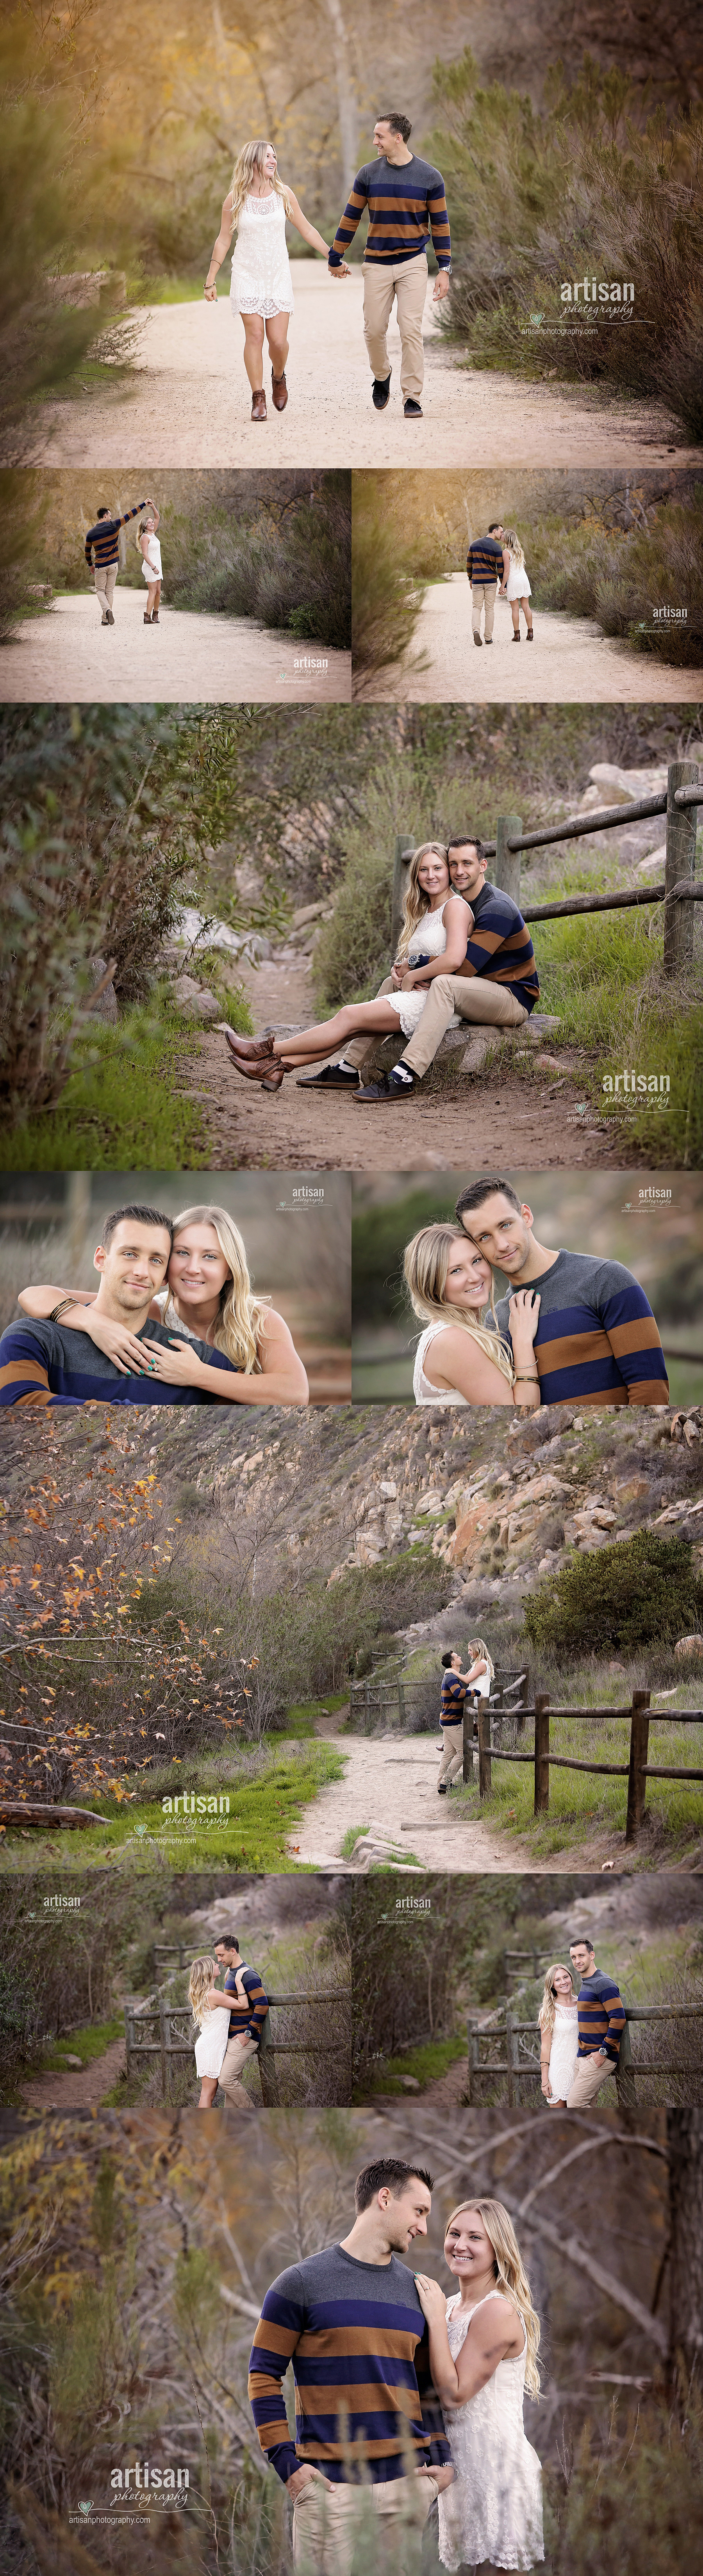 Fun life style engagement photo shoot with a country look in San diego south California part 1